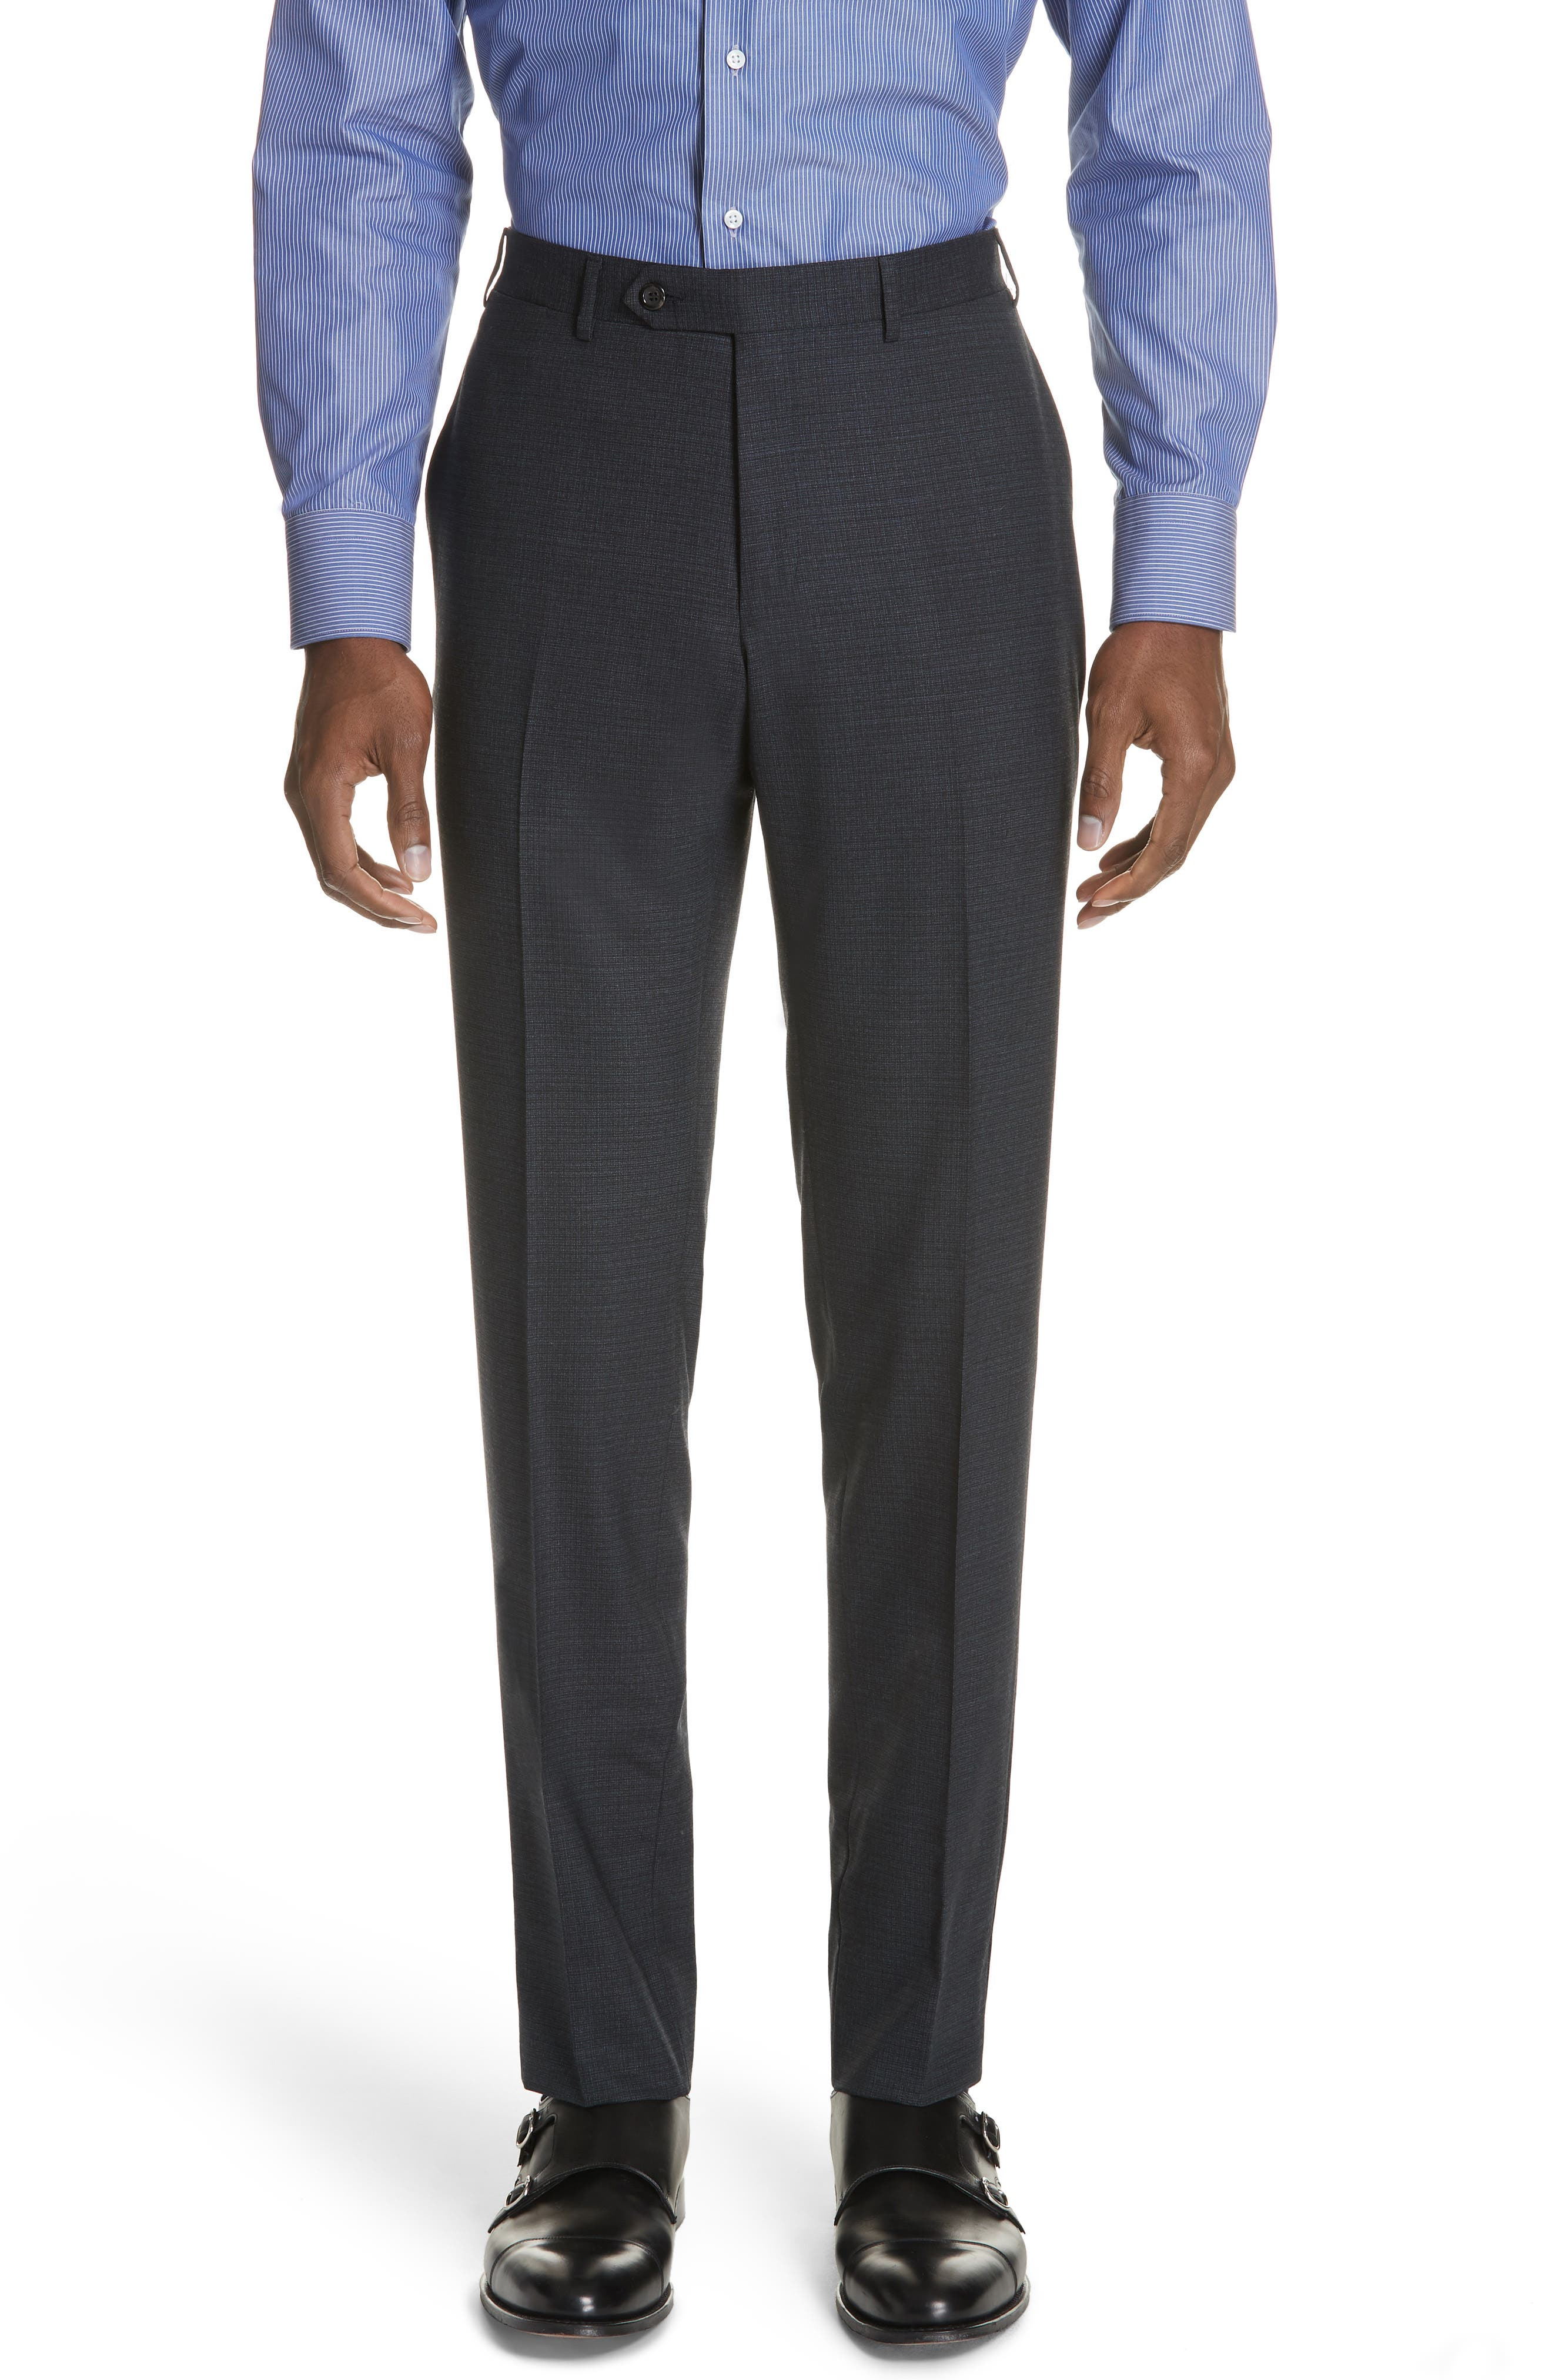 CANALI,                             Classic Fit Stretch Check Wool Suit,                             Alternate thumbnail 5, color,                             400